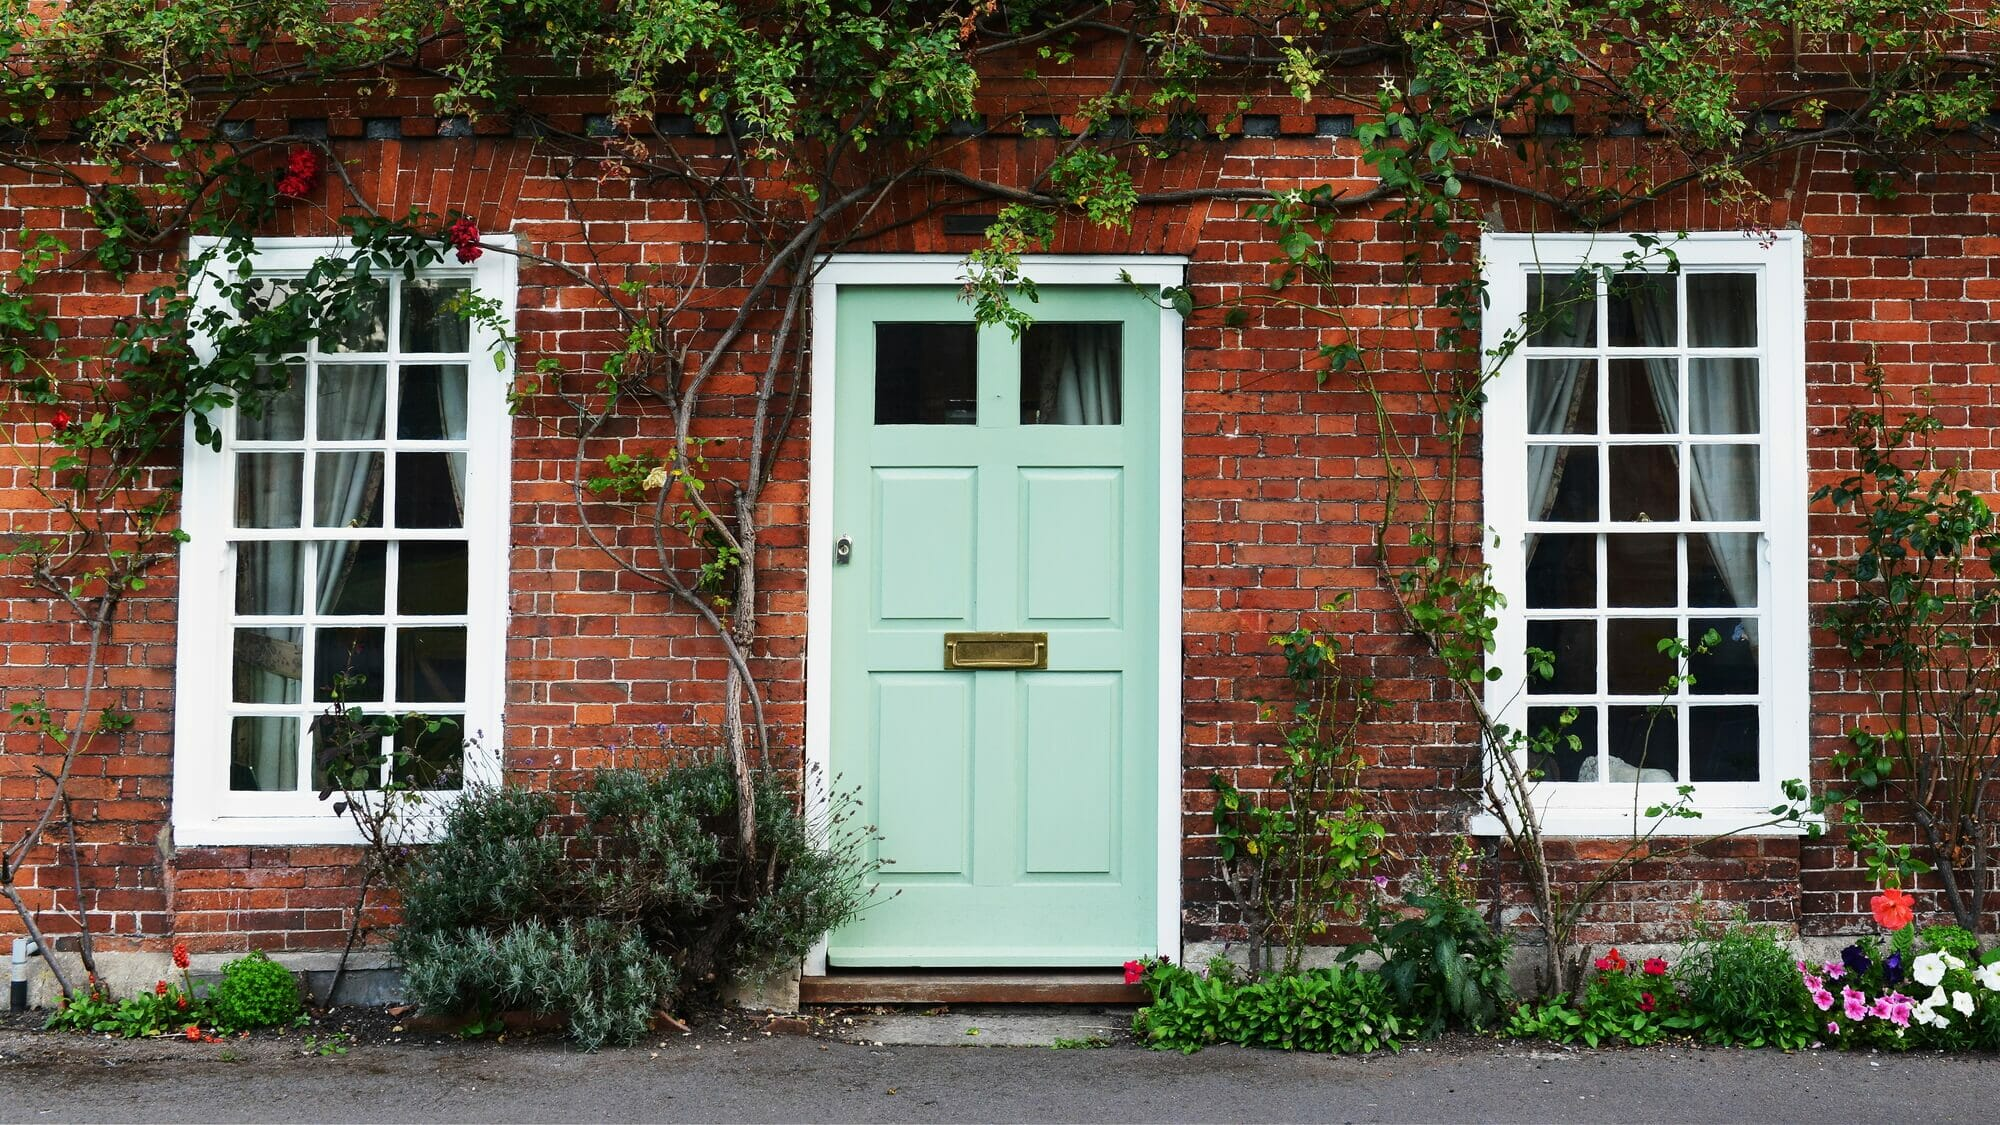 Understanding front door sizes in the UK